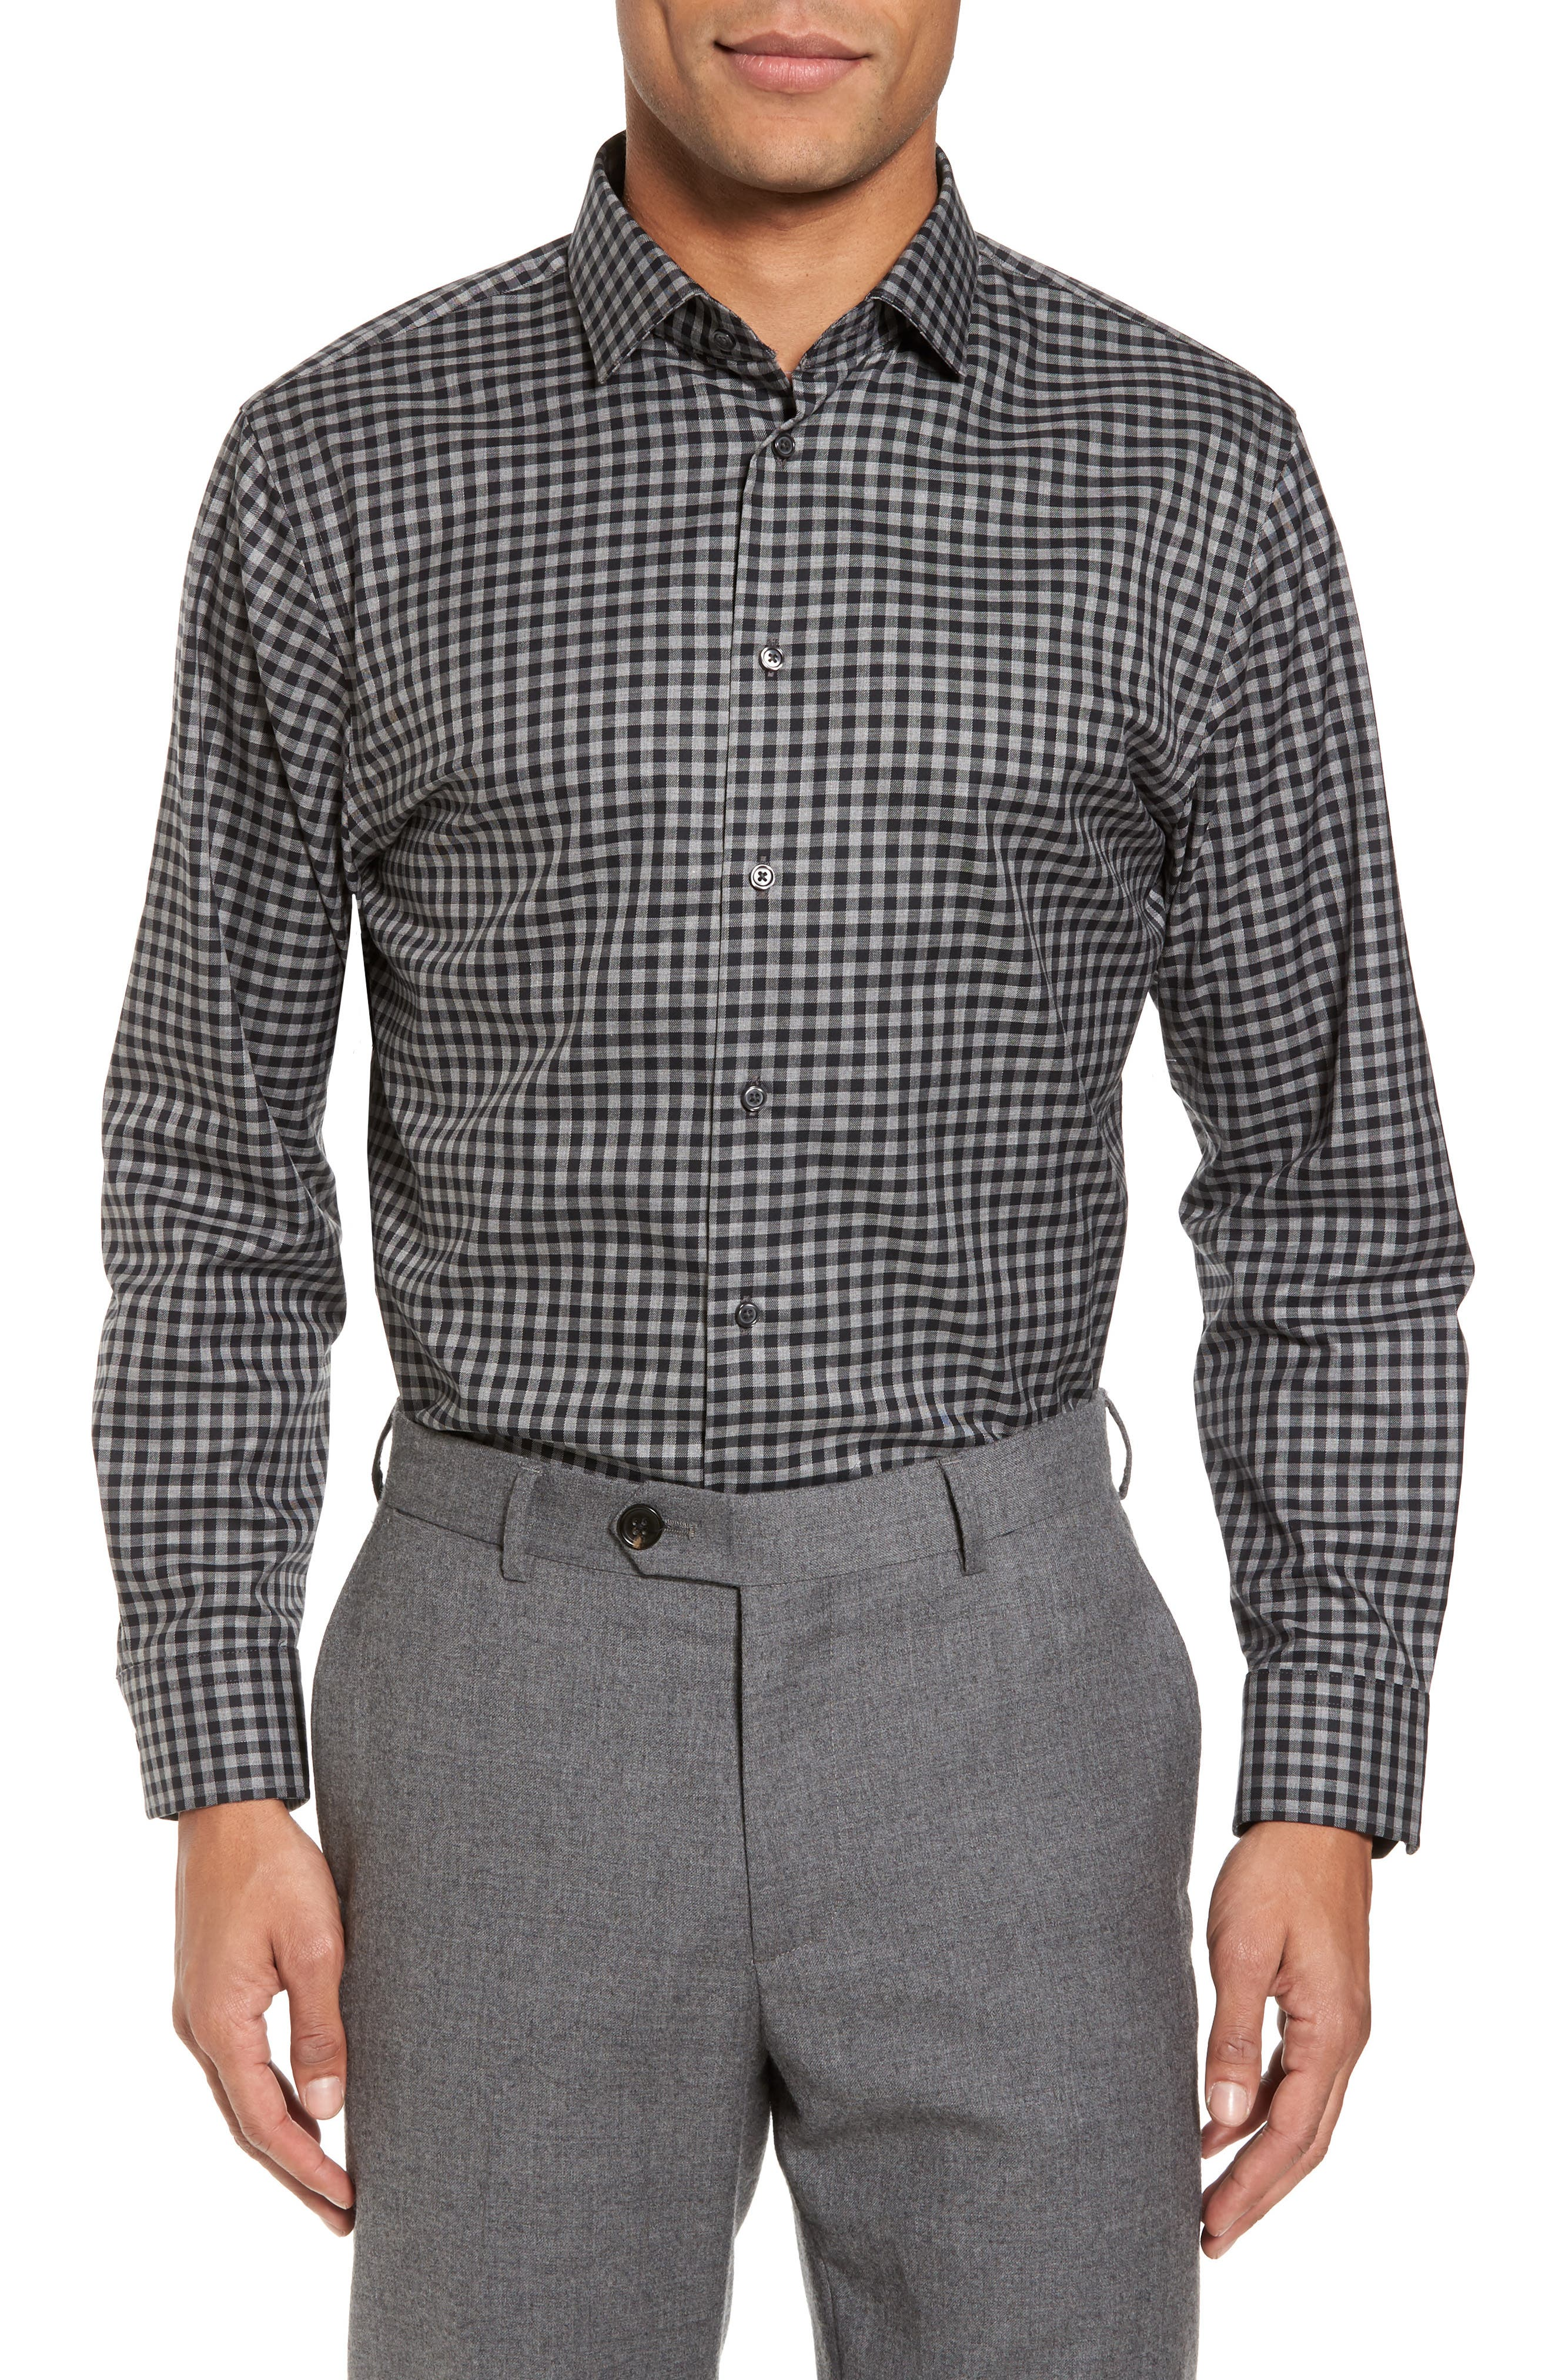 Main Image - Calibrate Trim Fit Check Dress Shirt